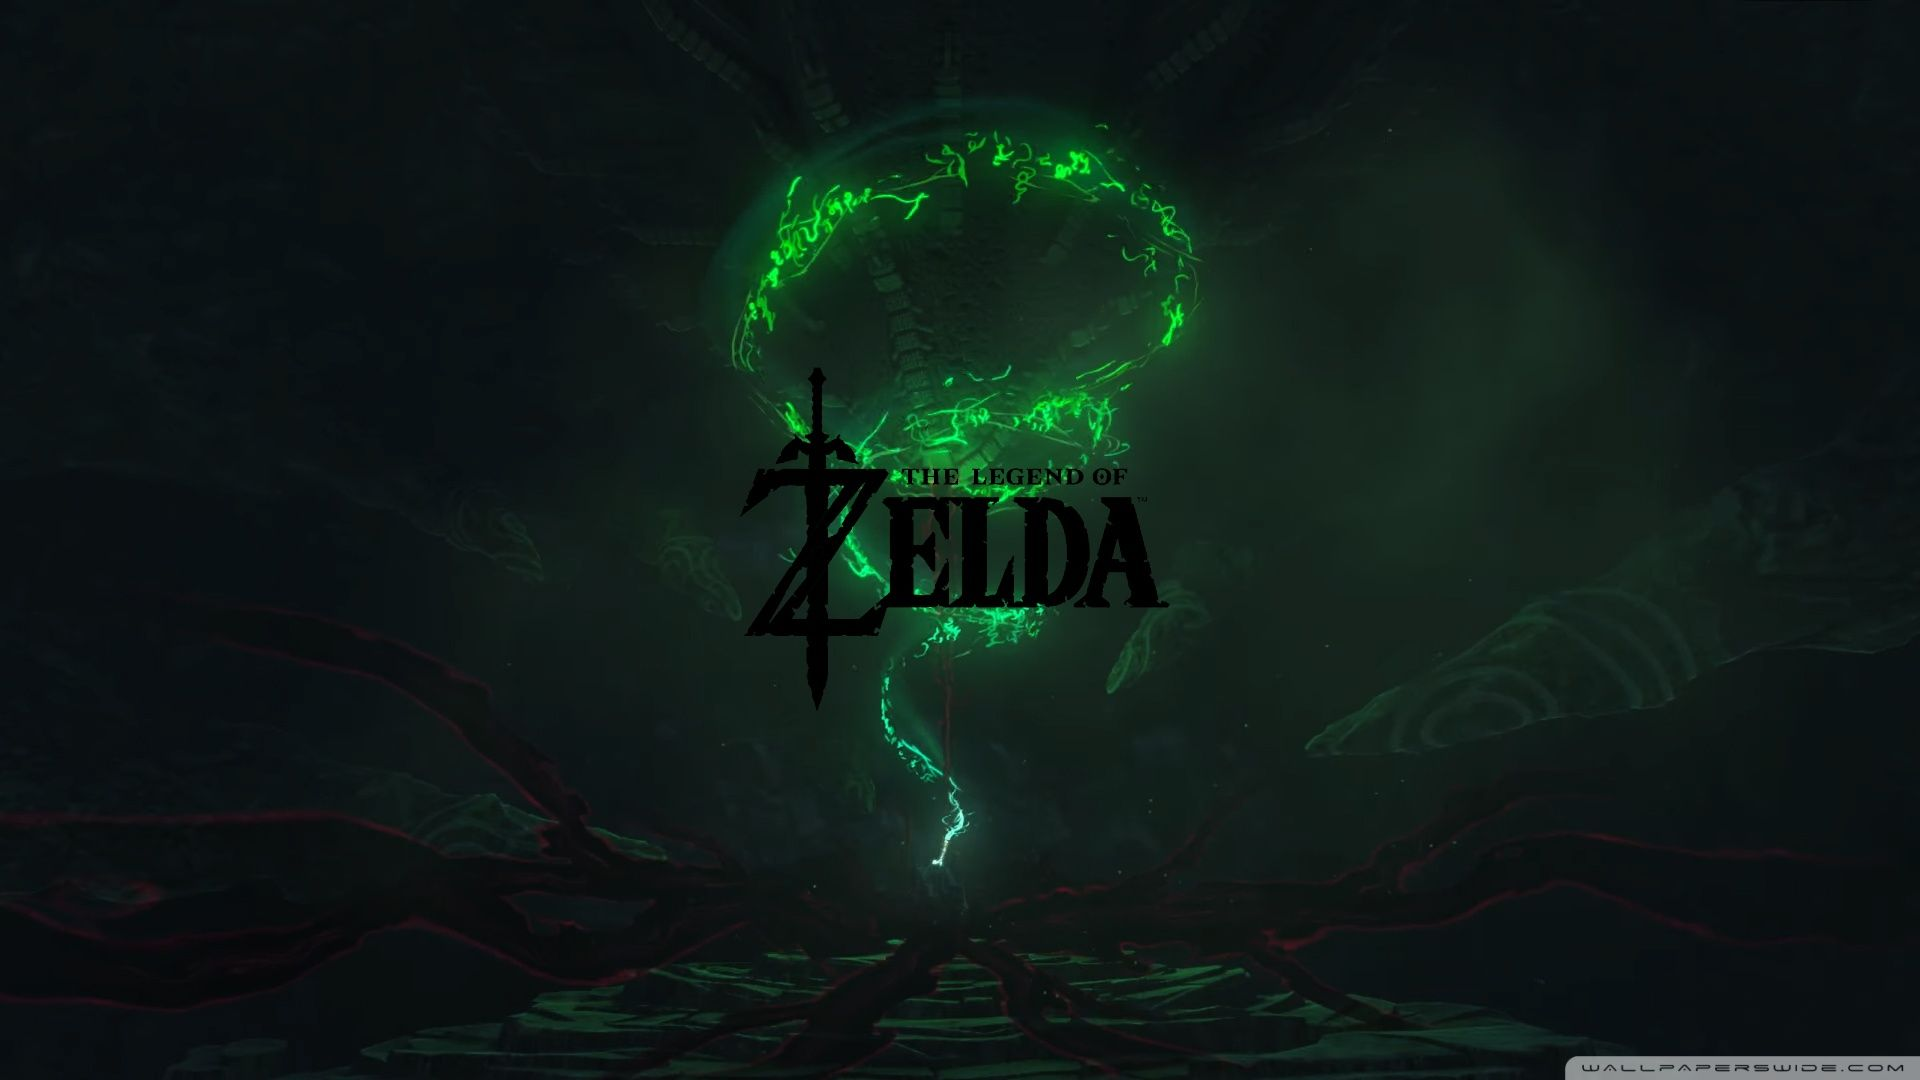 Zelda Botw Wallpapers Top Free Zelda Botw Backgrounds